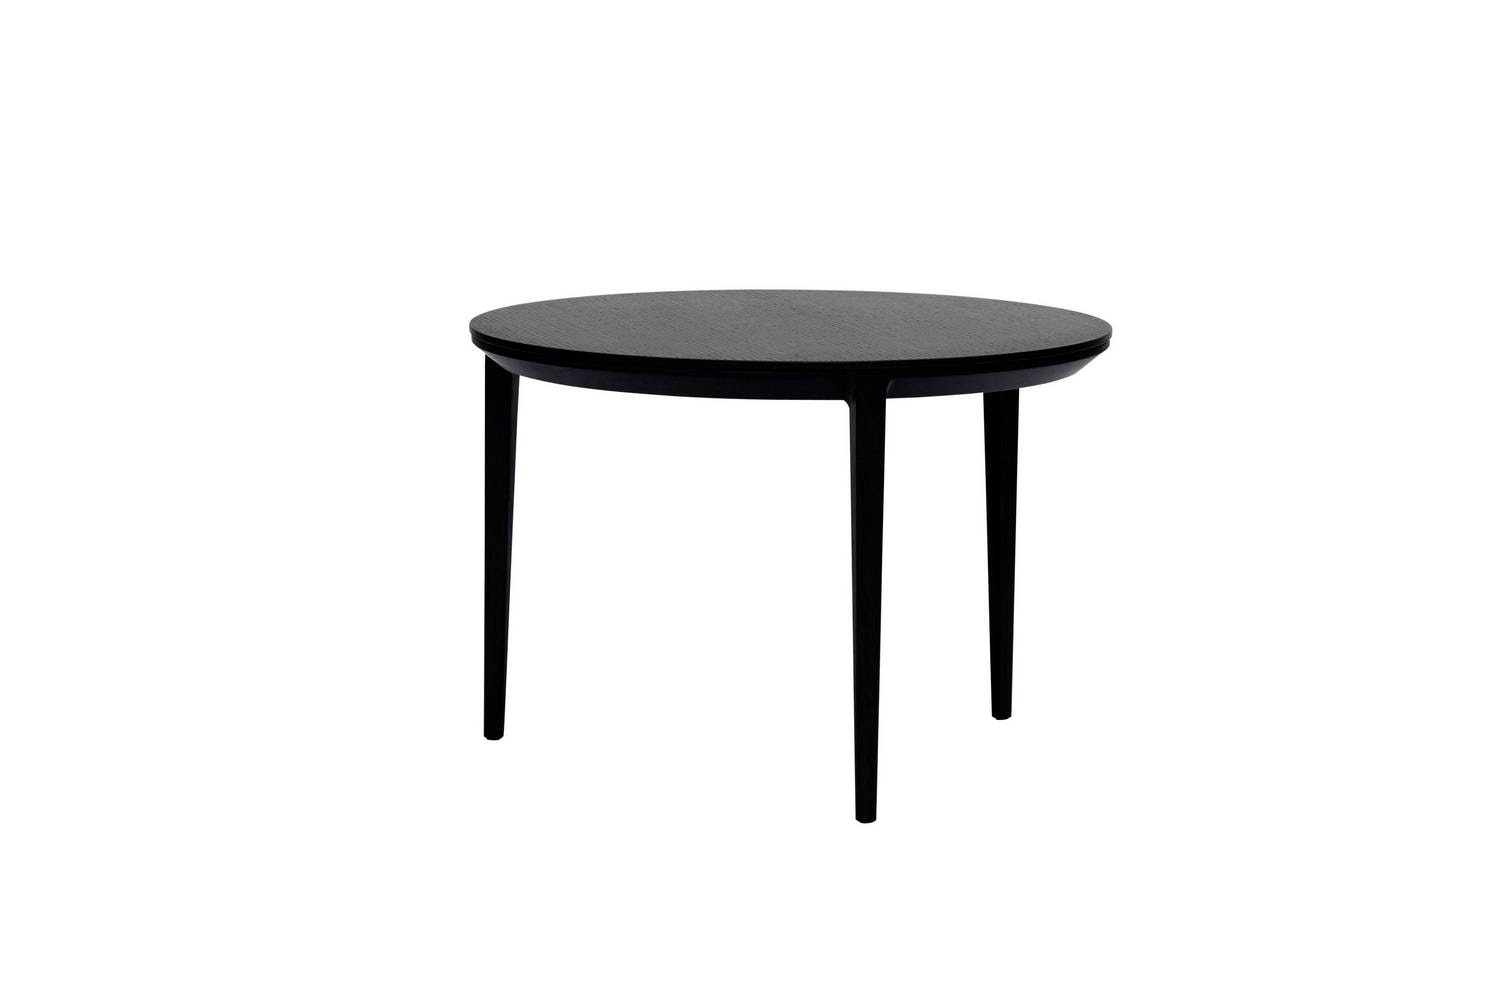 Etoile Side Table by Metrica for SP01